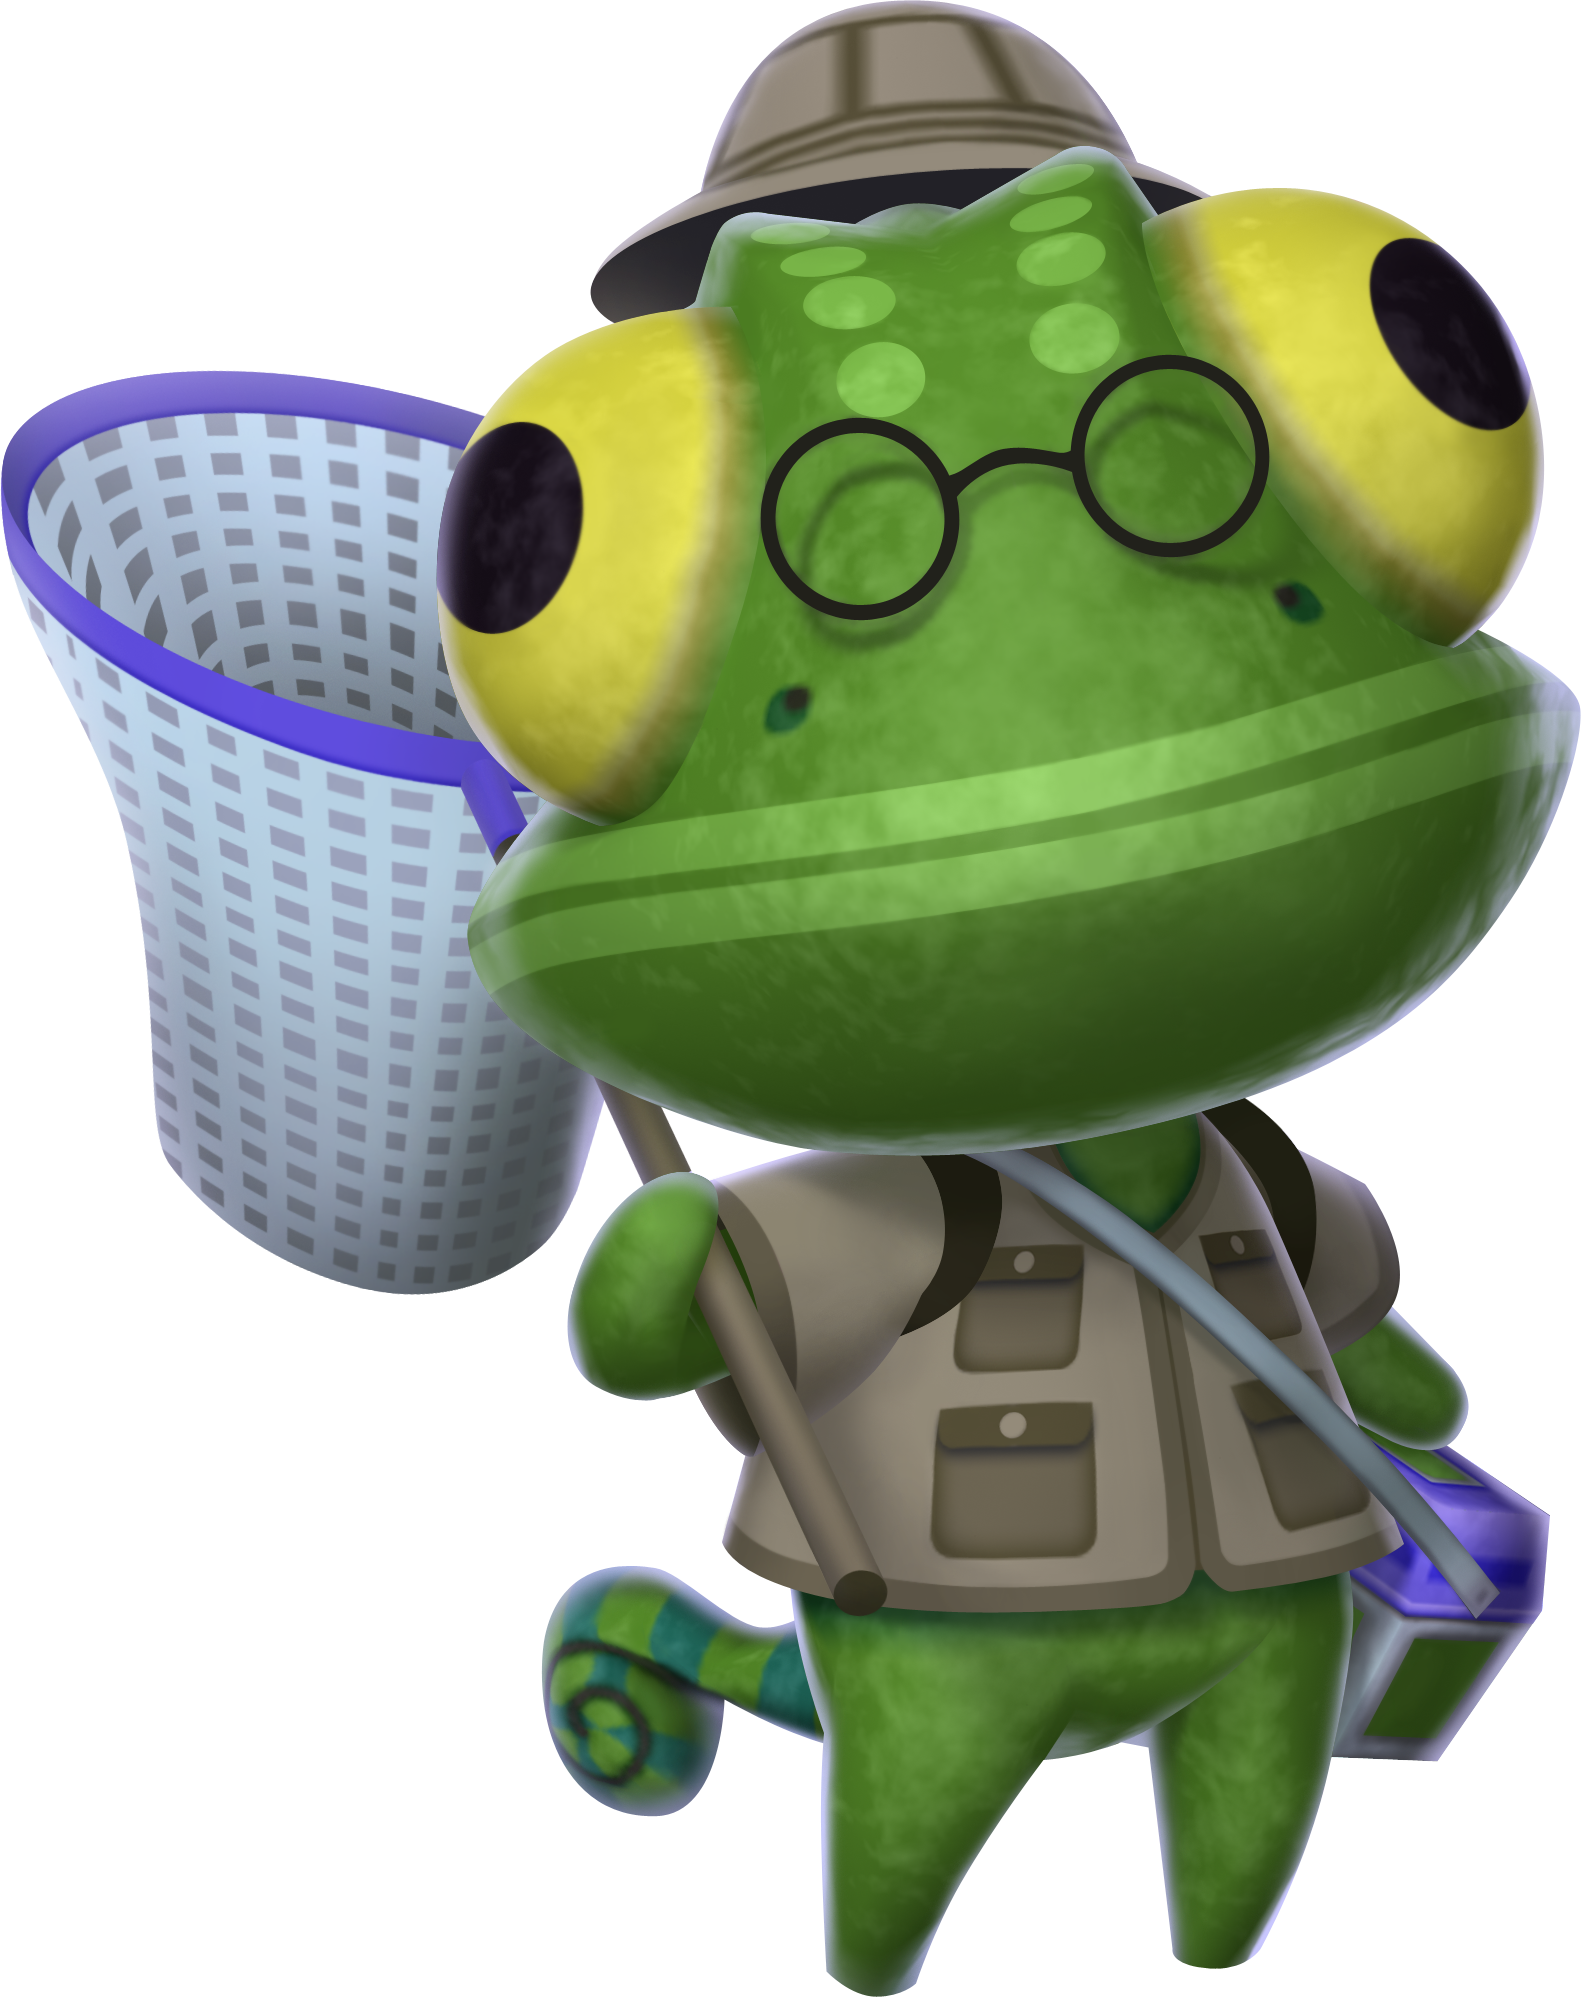 Animal crossing new leaf characters animal crossing wiki for Animal crossing new leaf arredamento